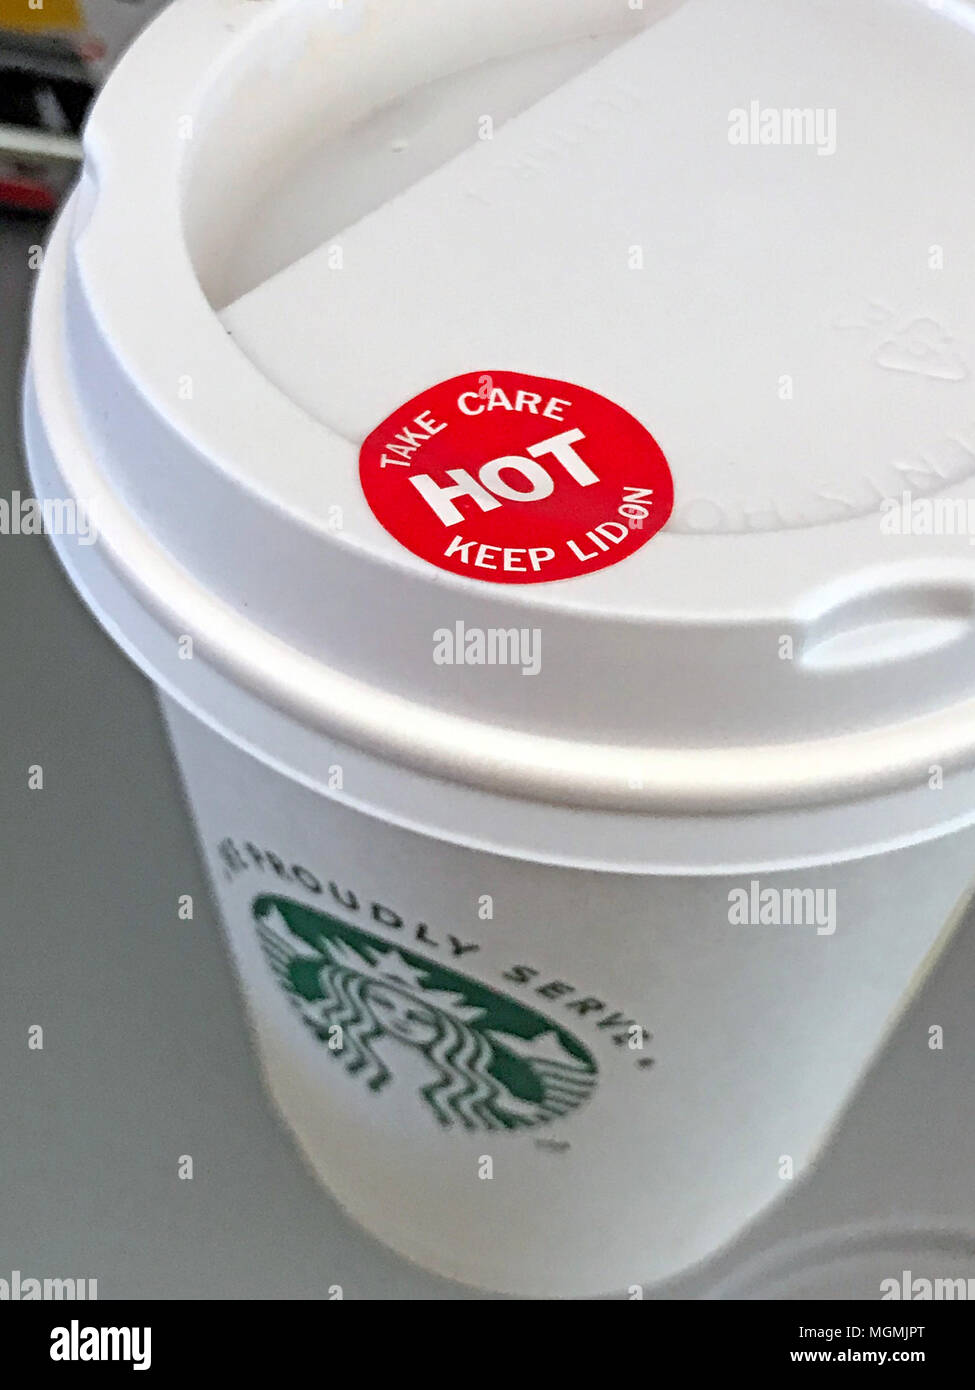 GoTonySmith,recyclable,unrecyclable,single,use,waste,single use,singleuse,hot coffee sticker,hot coffee,health,safety,H&S,Health and Safety,on,Starbucks,disposable,Coffee,cup,recycling,plastic waste,consumer,habits,nudge,Costa,Cafe Nero,coffeeshop,Plastic recycling,recycle,please,Recycle Please,Friends,of,the,earth,campaign,campaigning,white,Starbucks logo,coffee chains,high st,logo